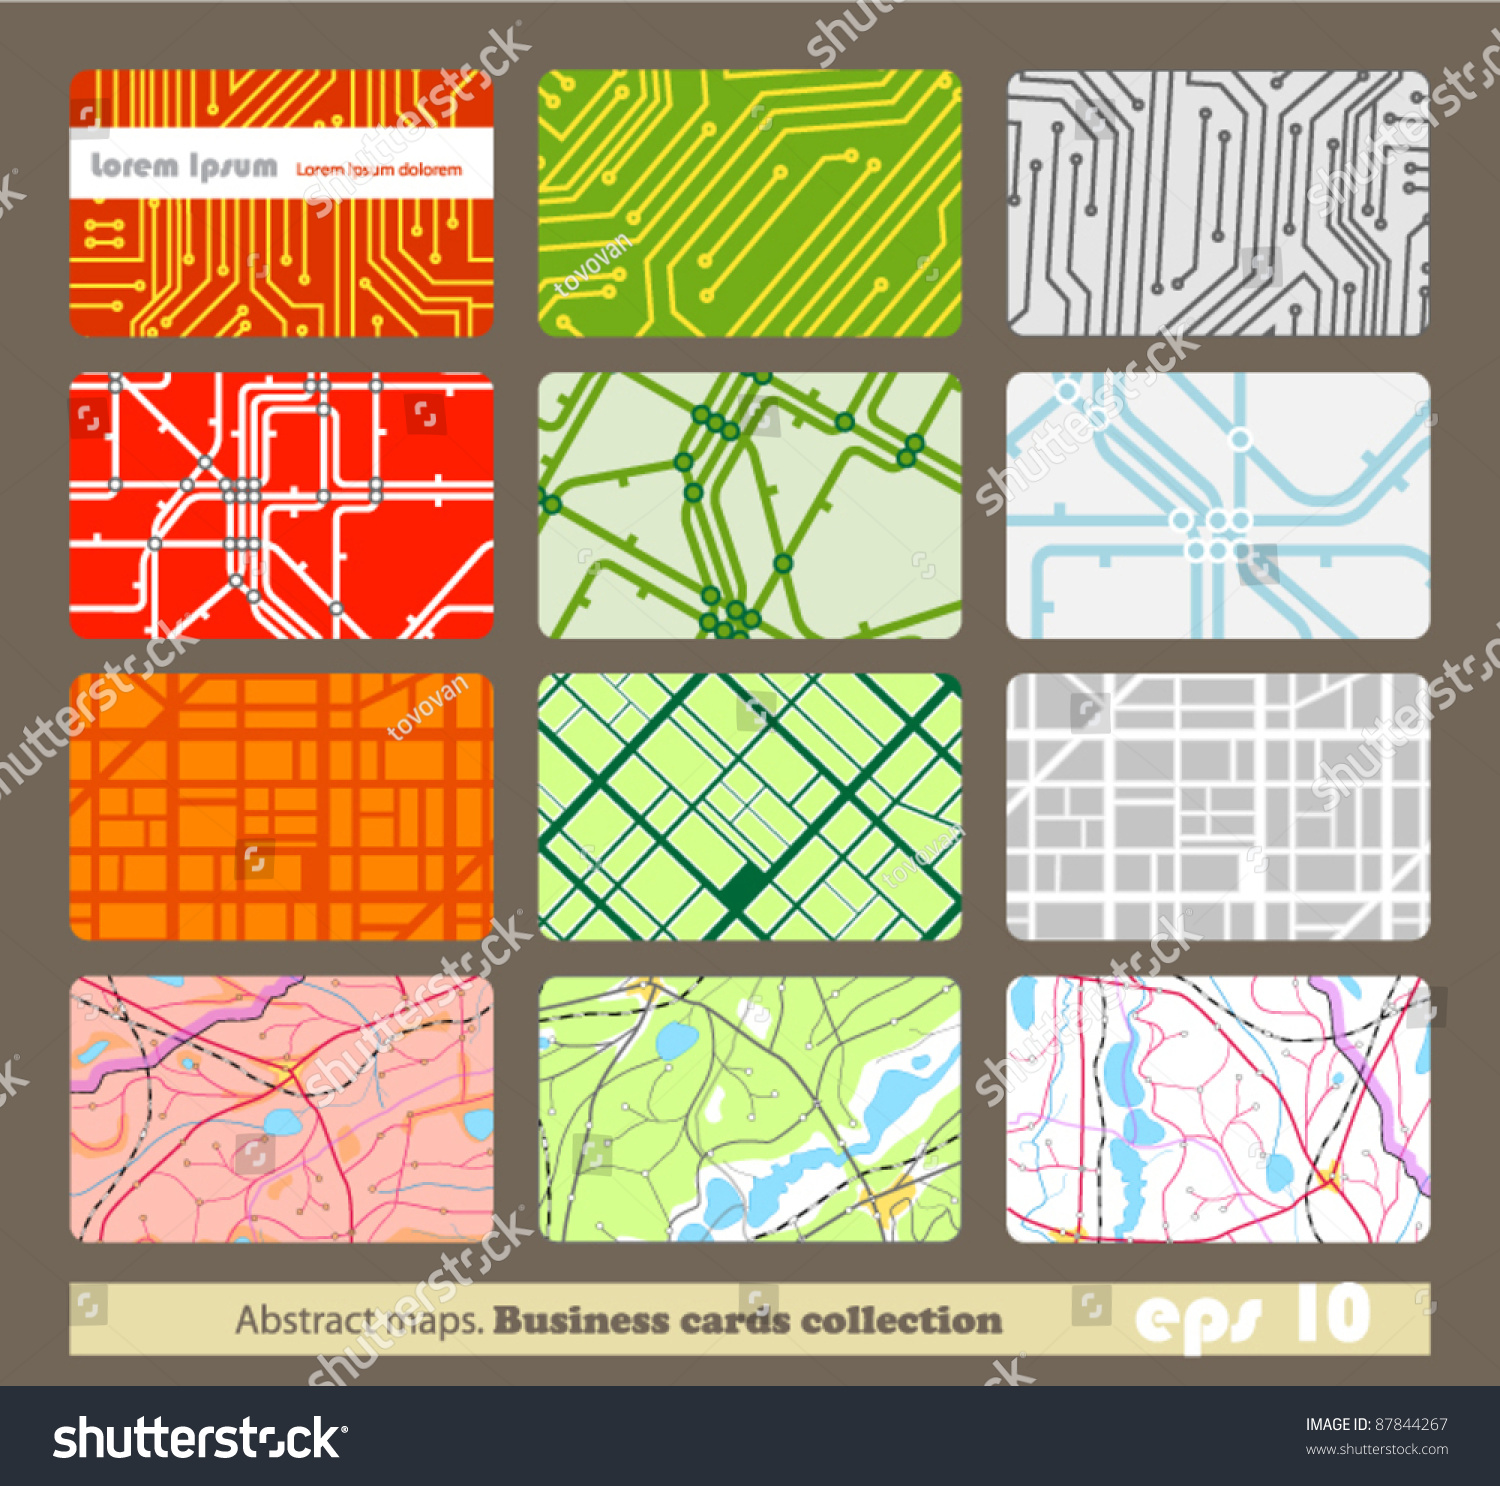 Set Different Business Cards Abstract Maps Stock Vector 87844267 ...